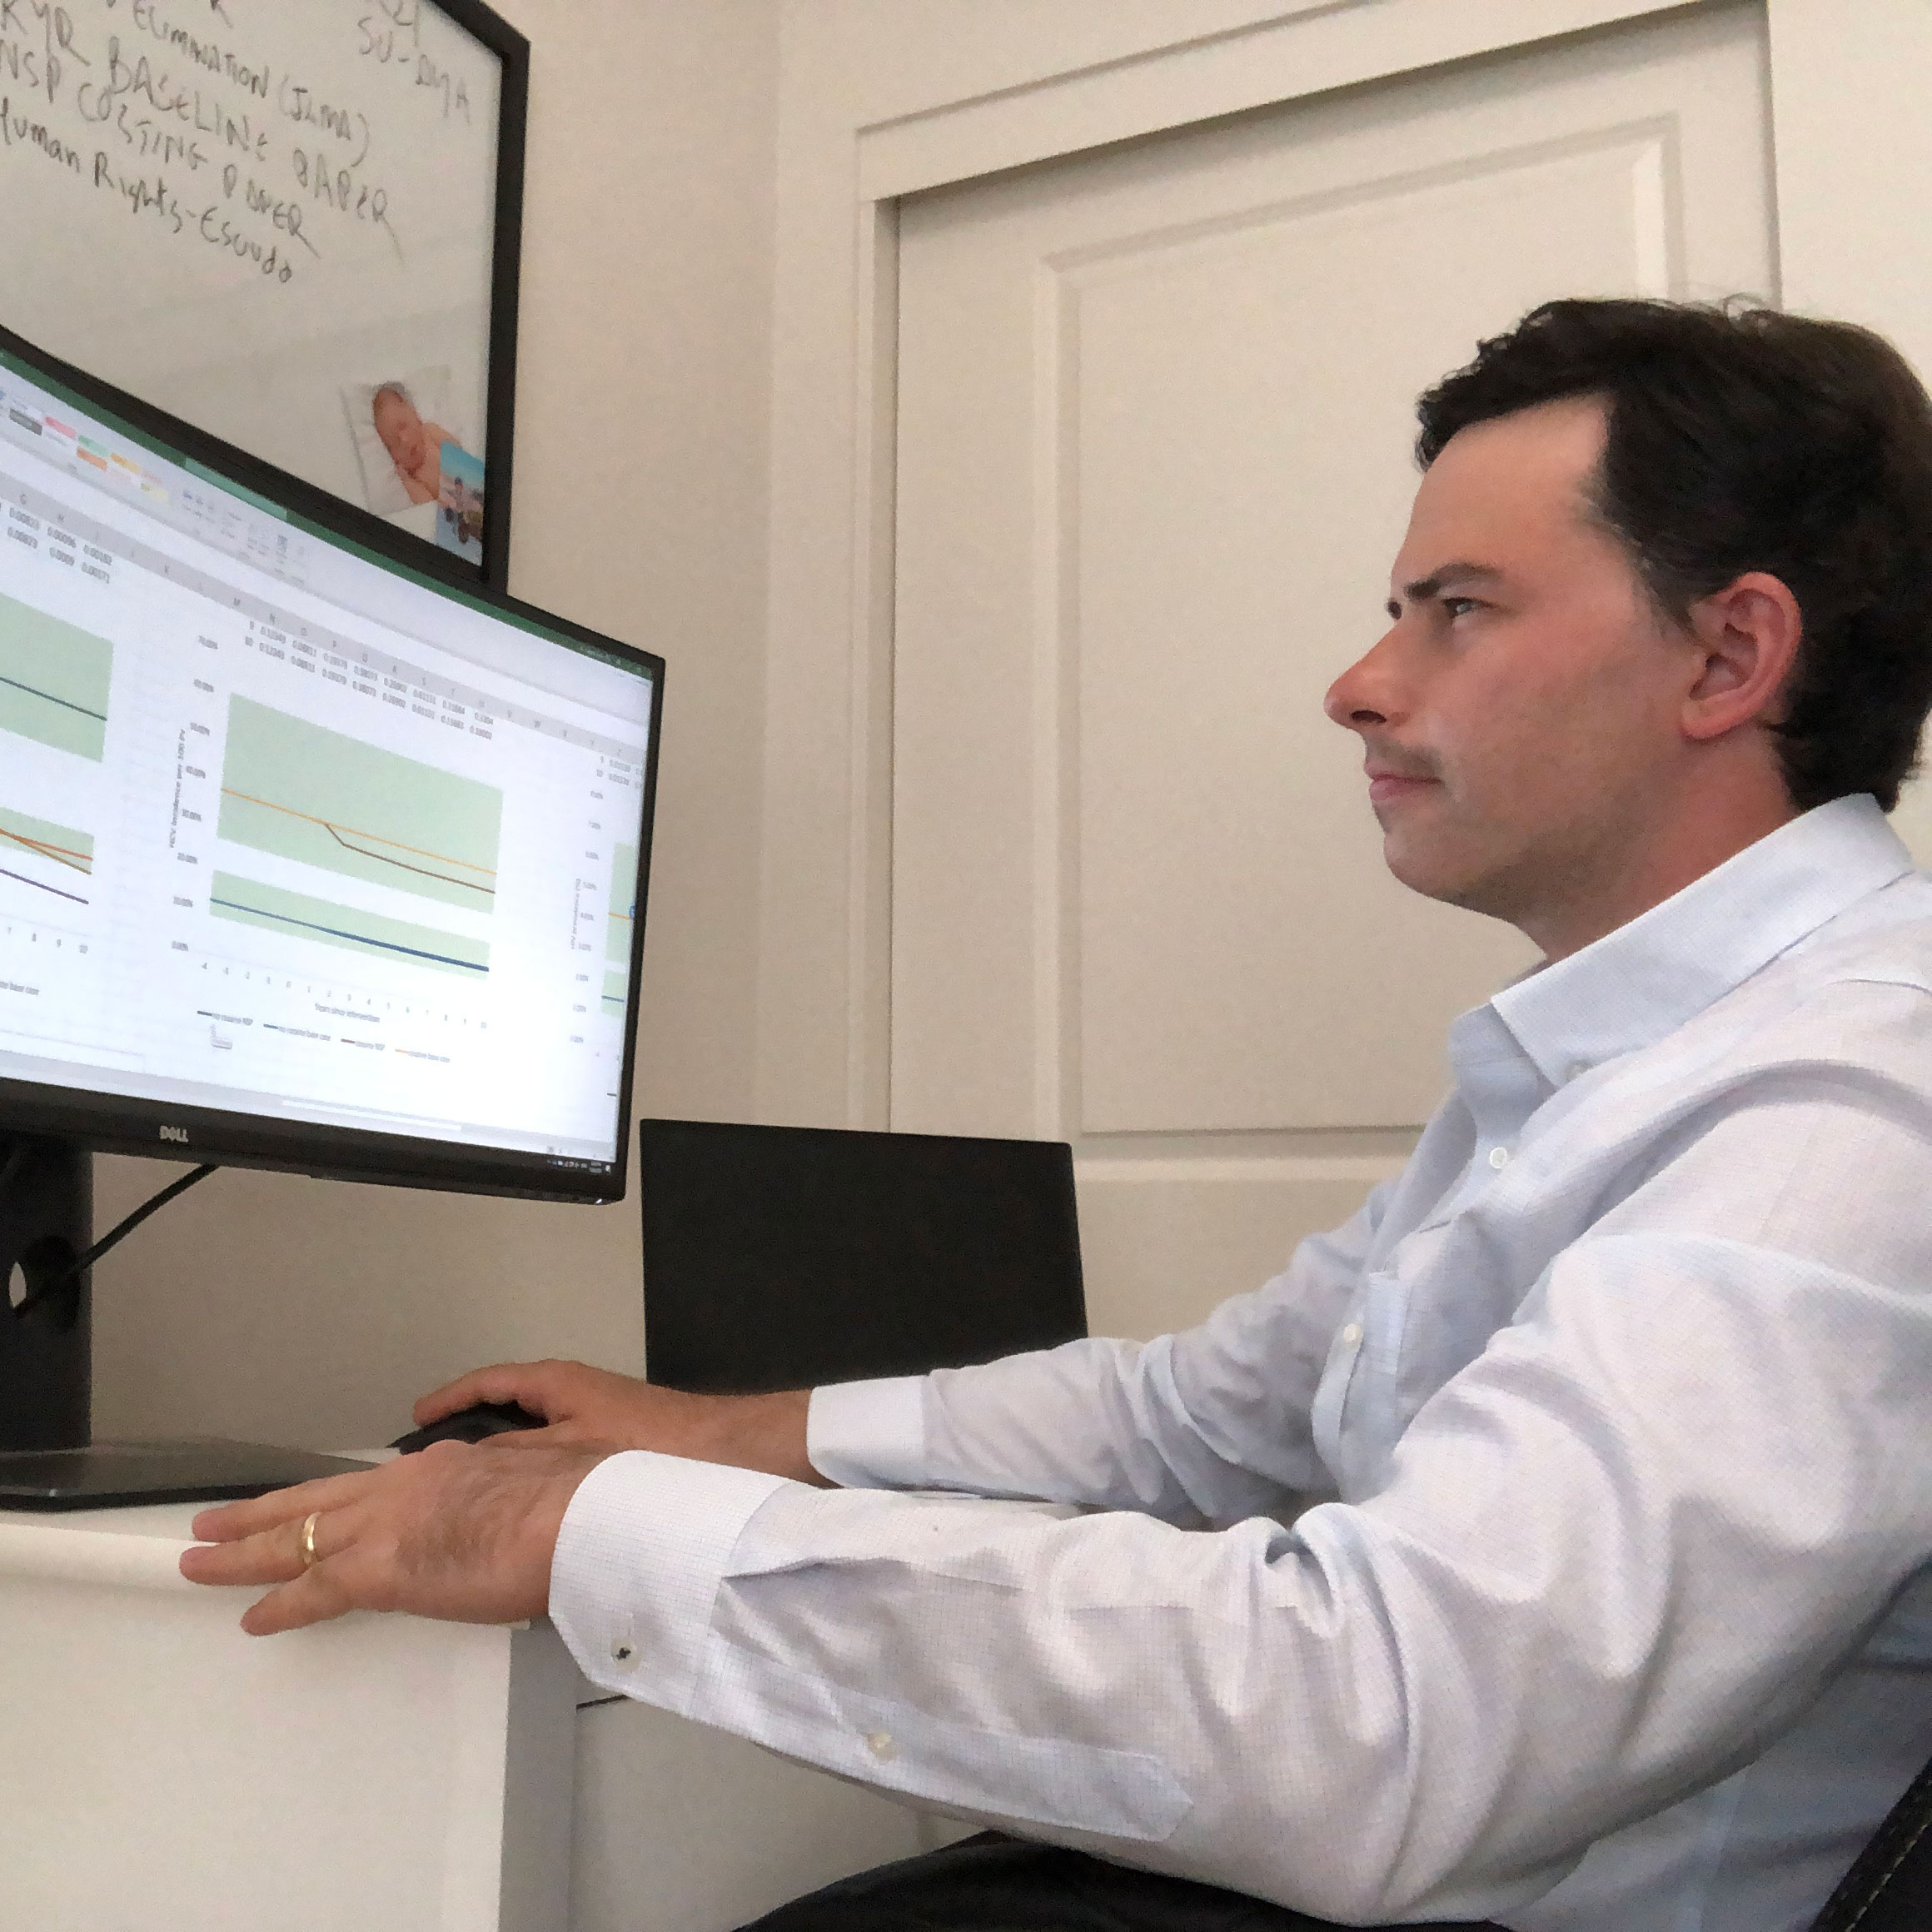 Dr Cepeda works with data on his computer screen